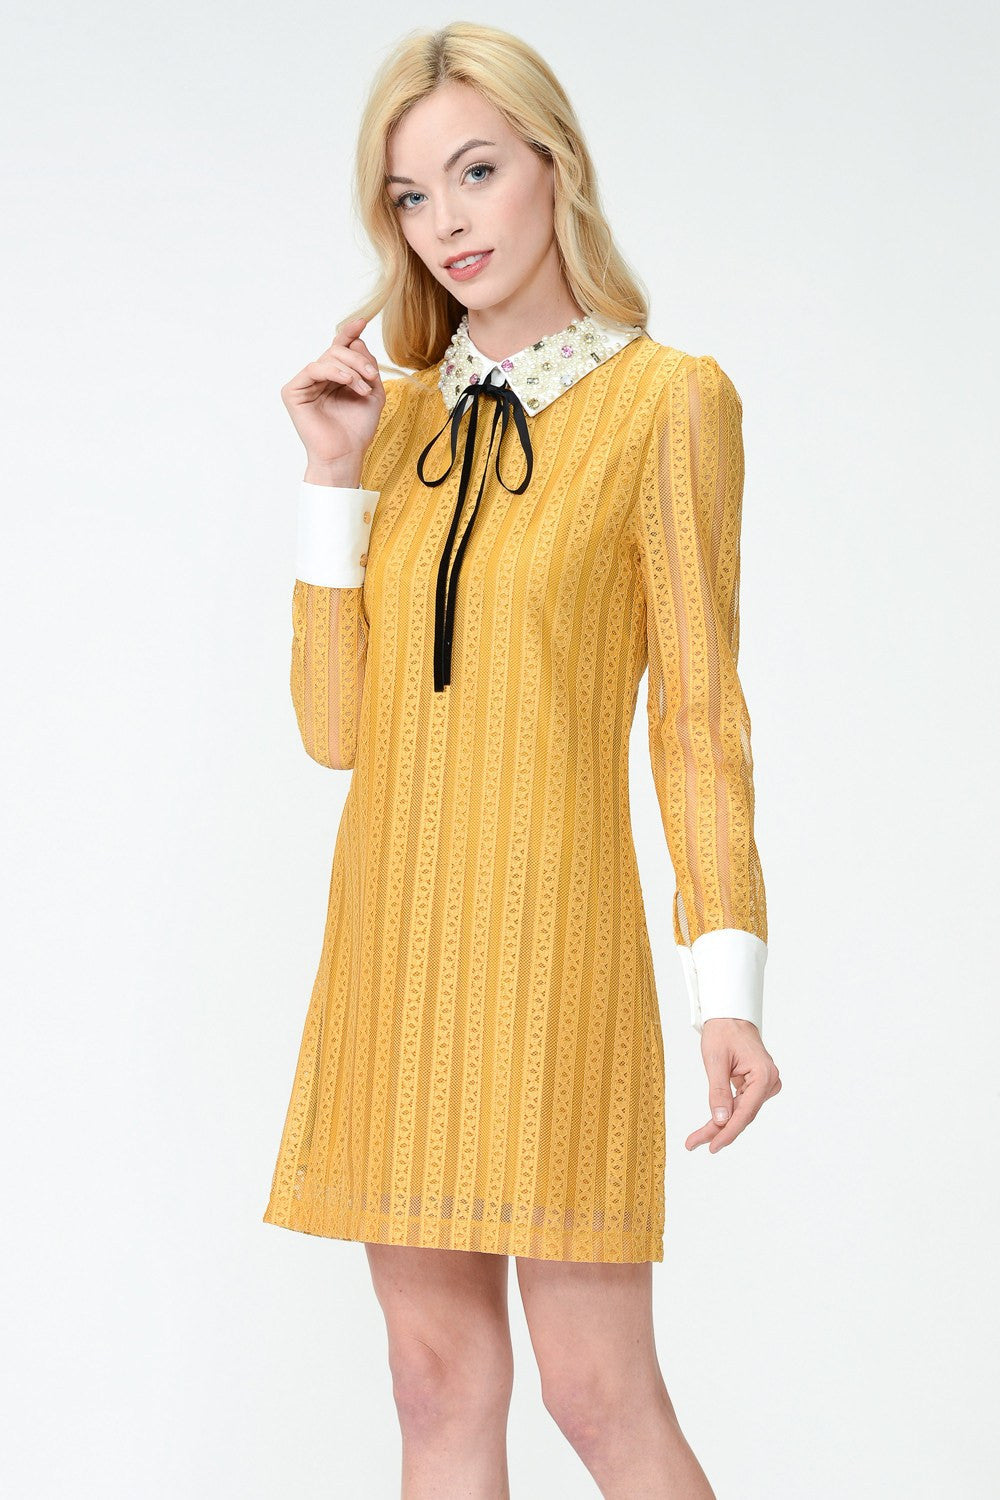 Main Squeeze Rabbit Dress by Sister Jane